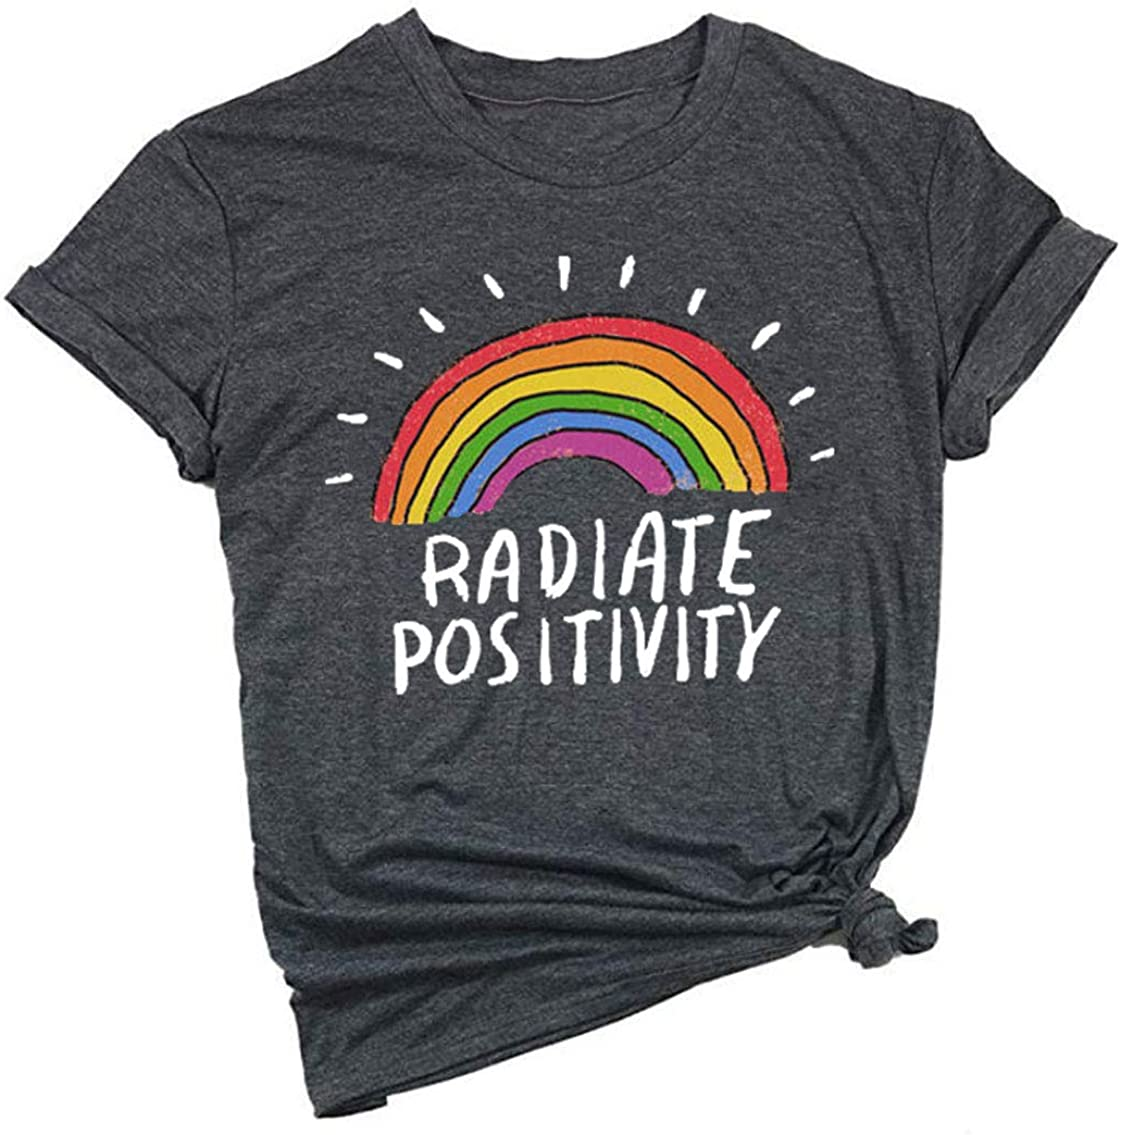 Women Radiate Positivity Rainbow T-Shirt Funny Letter Printe Rainbow Graphic Tee Summer Short Sleeve Shirts Tops